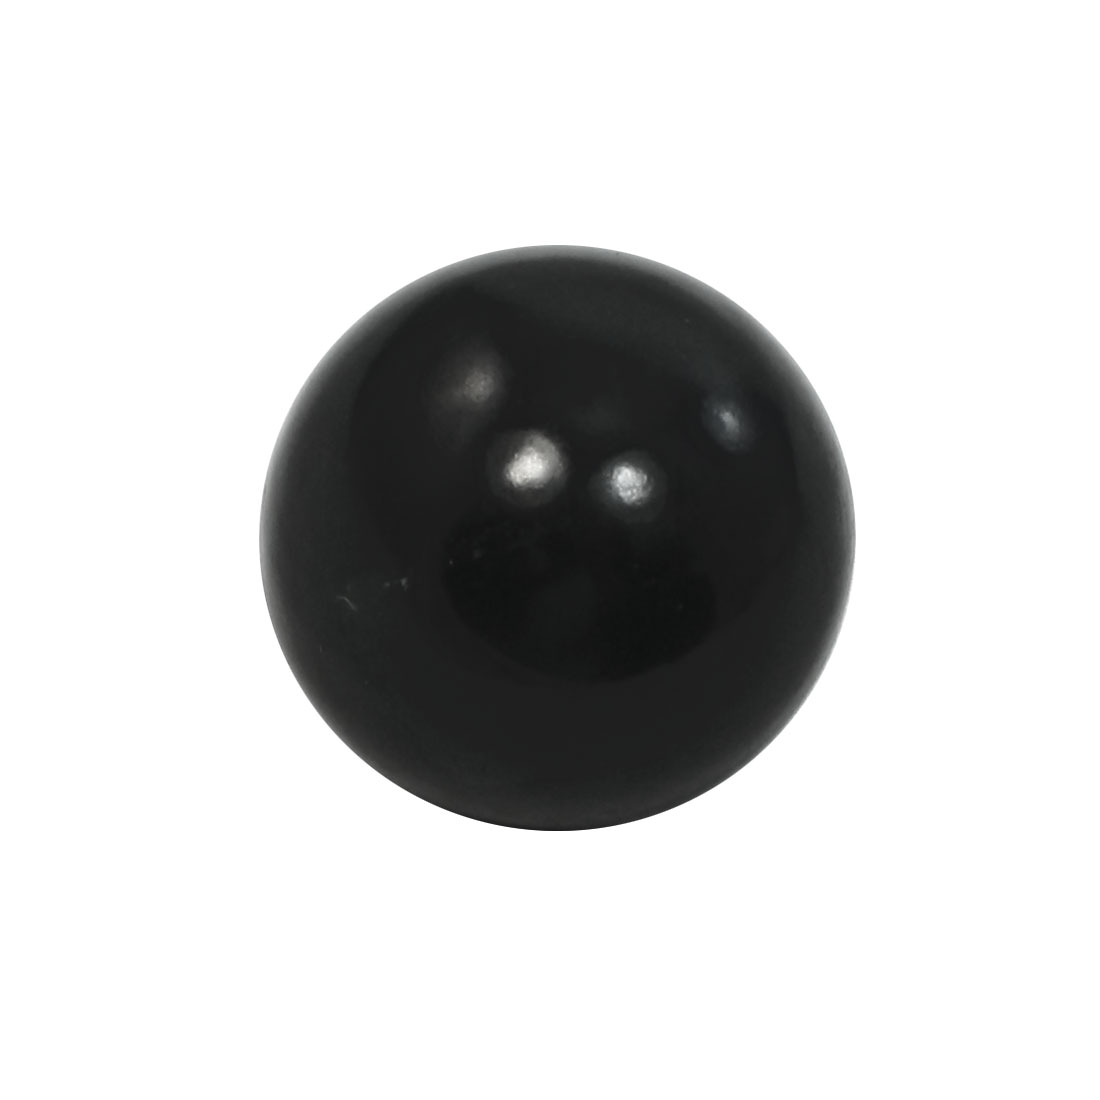 Black Threaded Ball Knob 40mm Dia 12mm Bore for Joystick Machine Handle